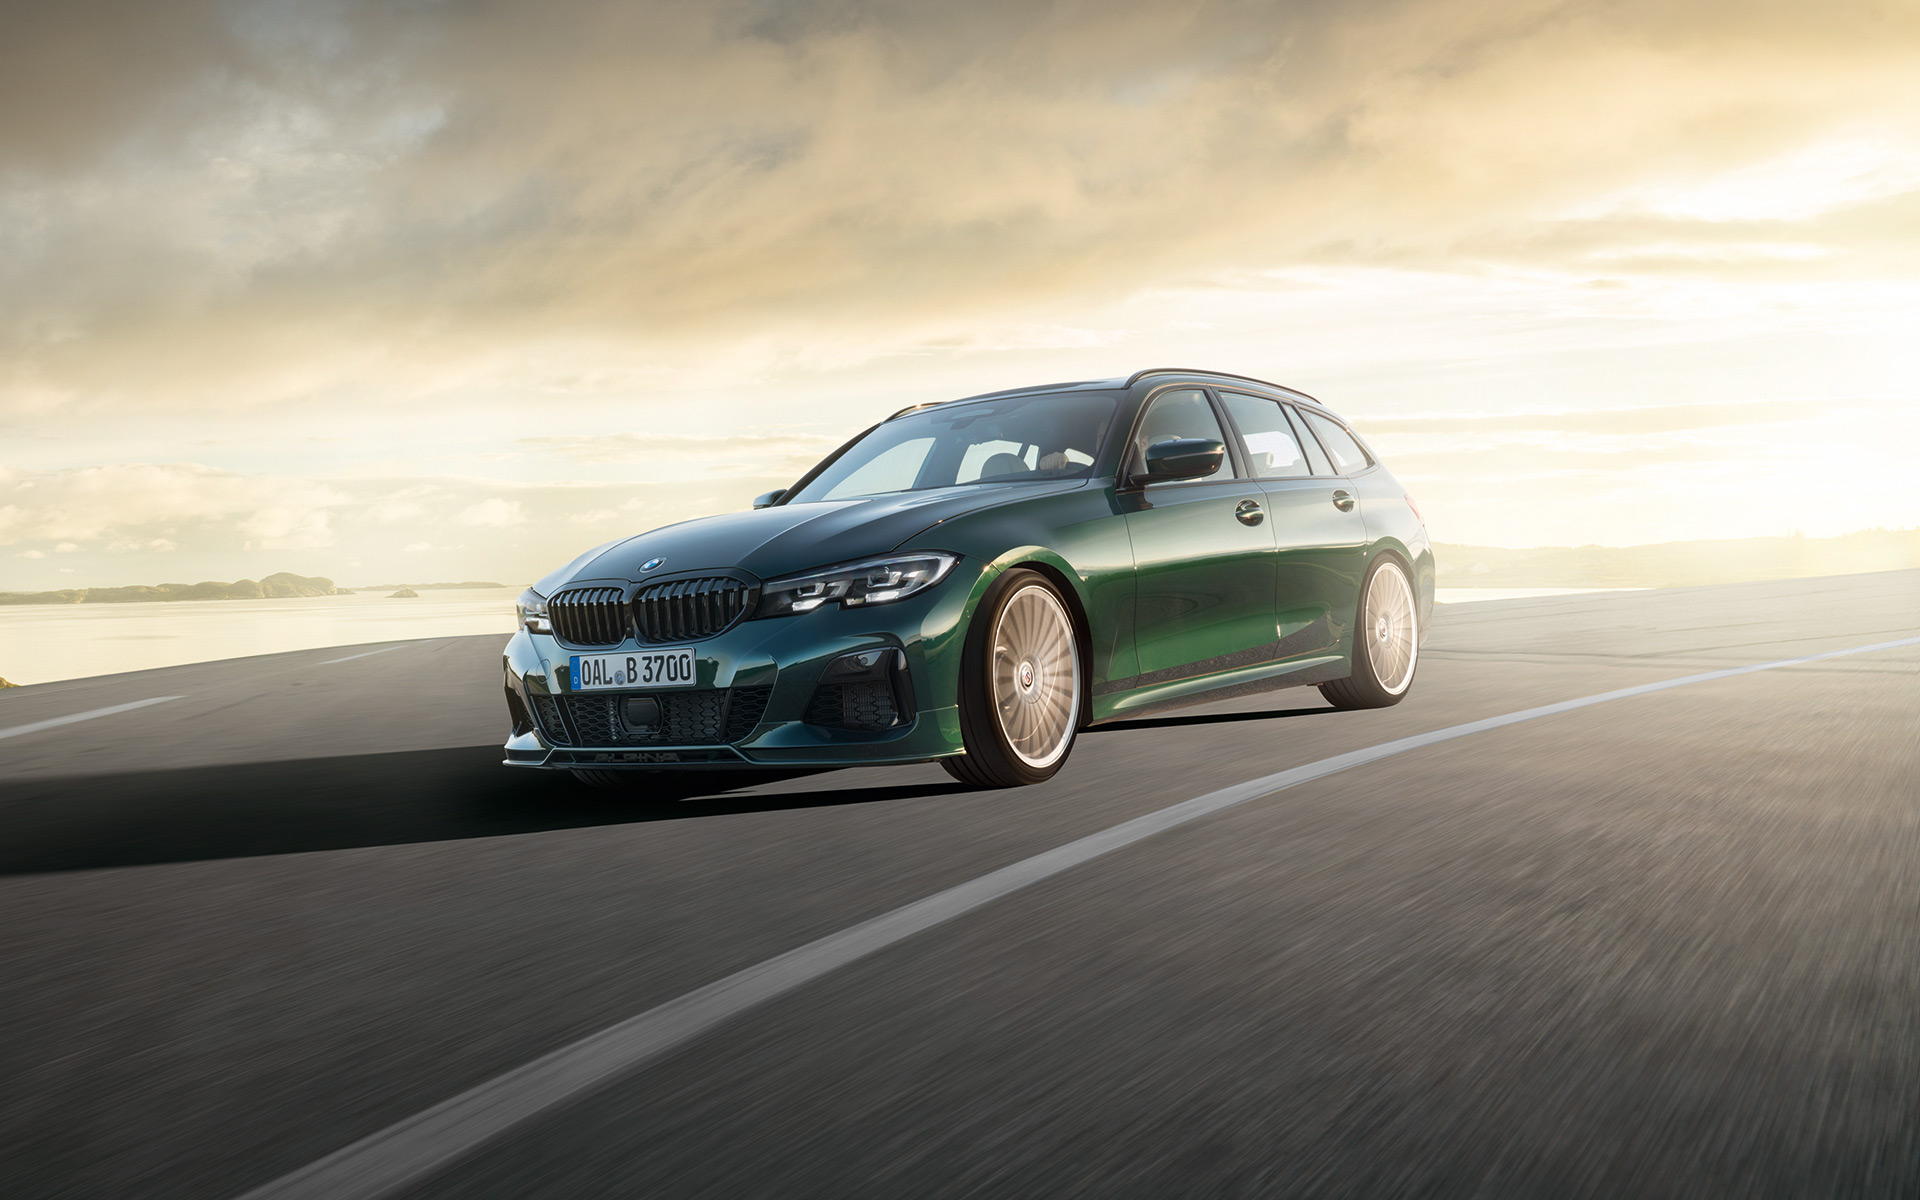 The Alpina B3 Touring is gorgeous, green, and not for us